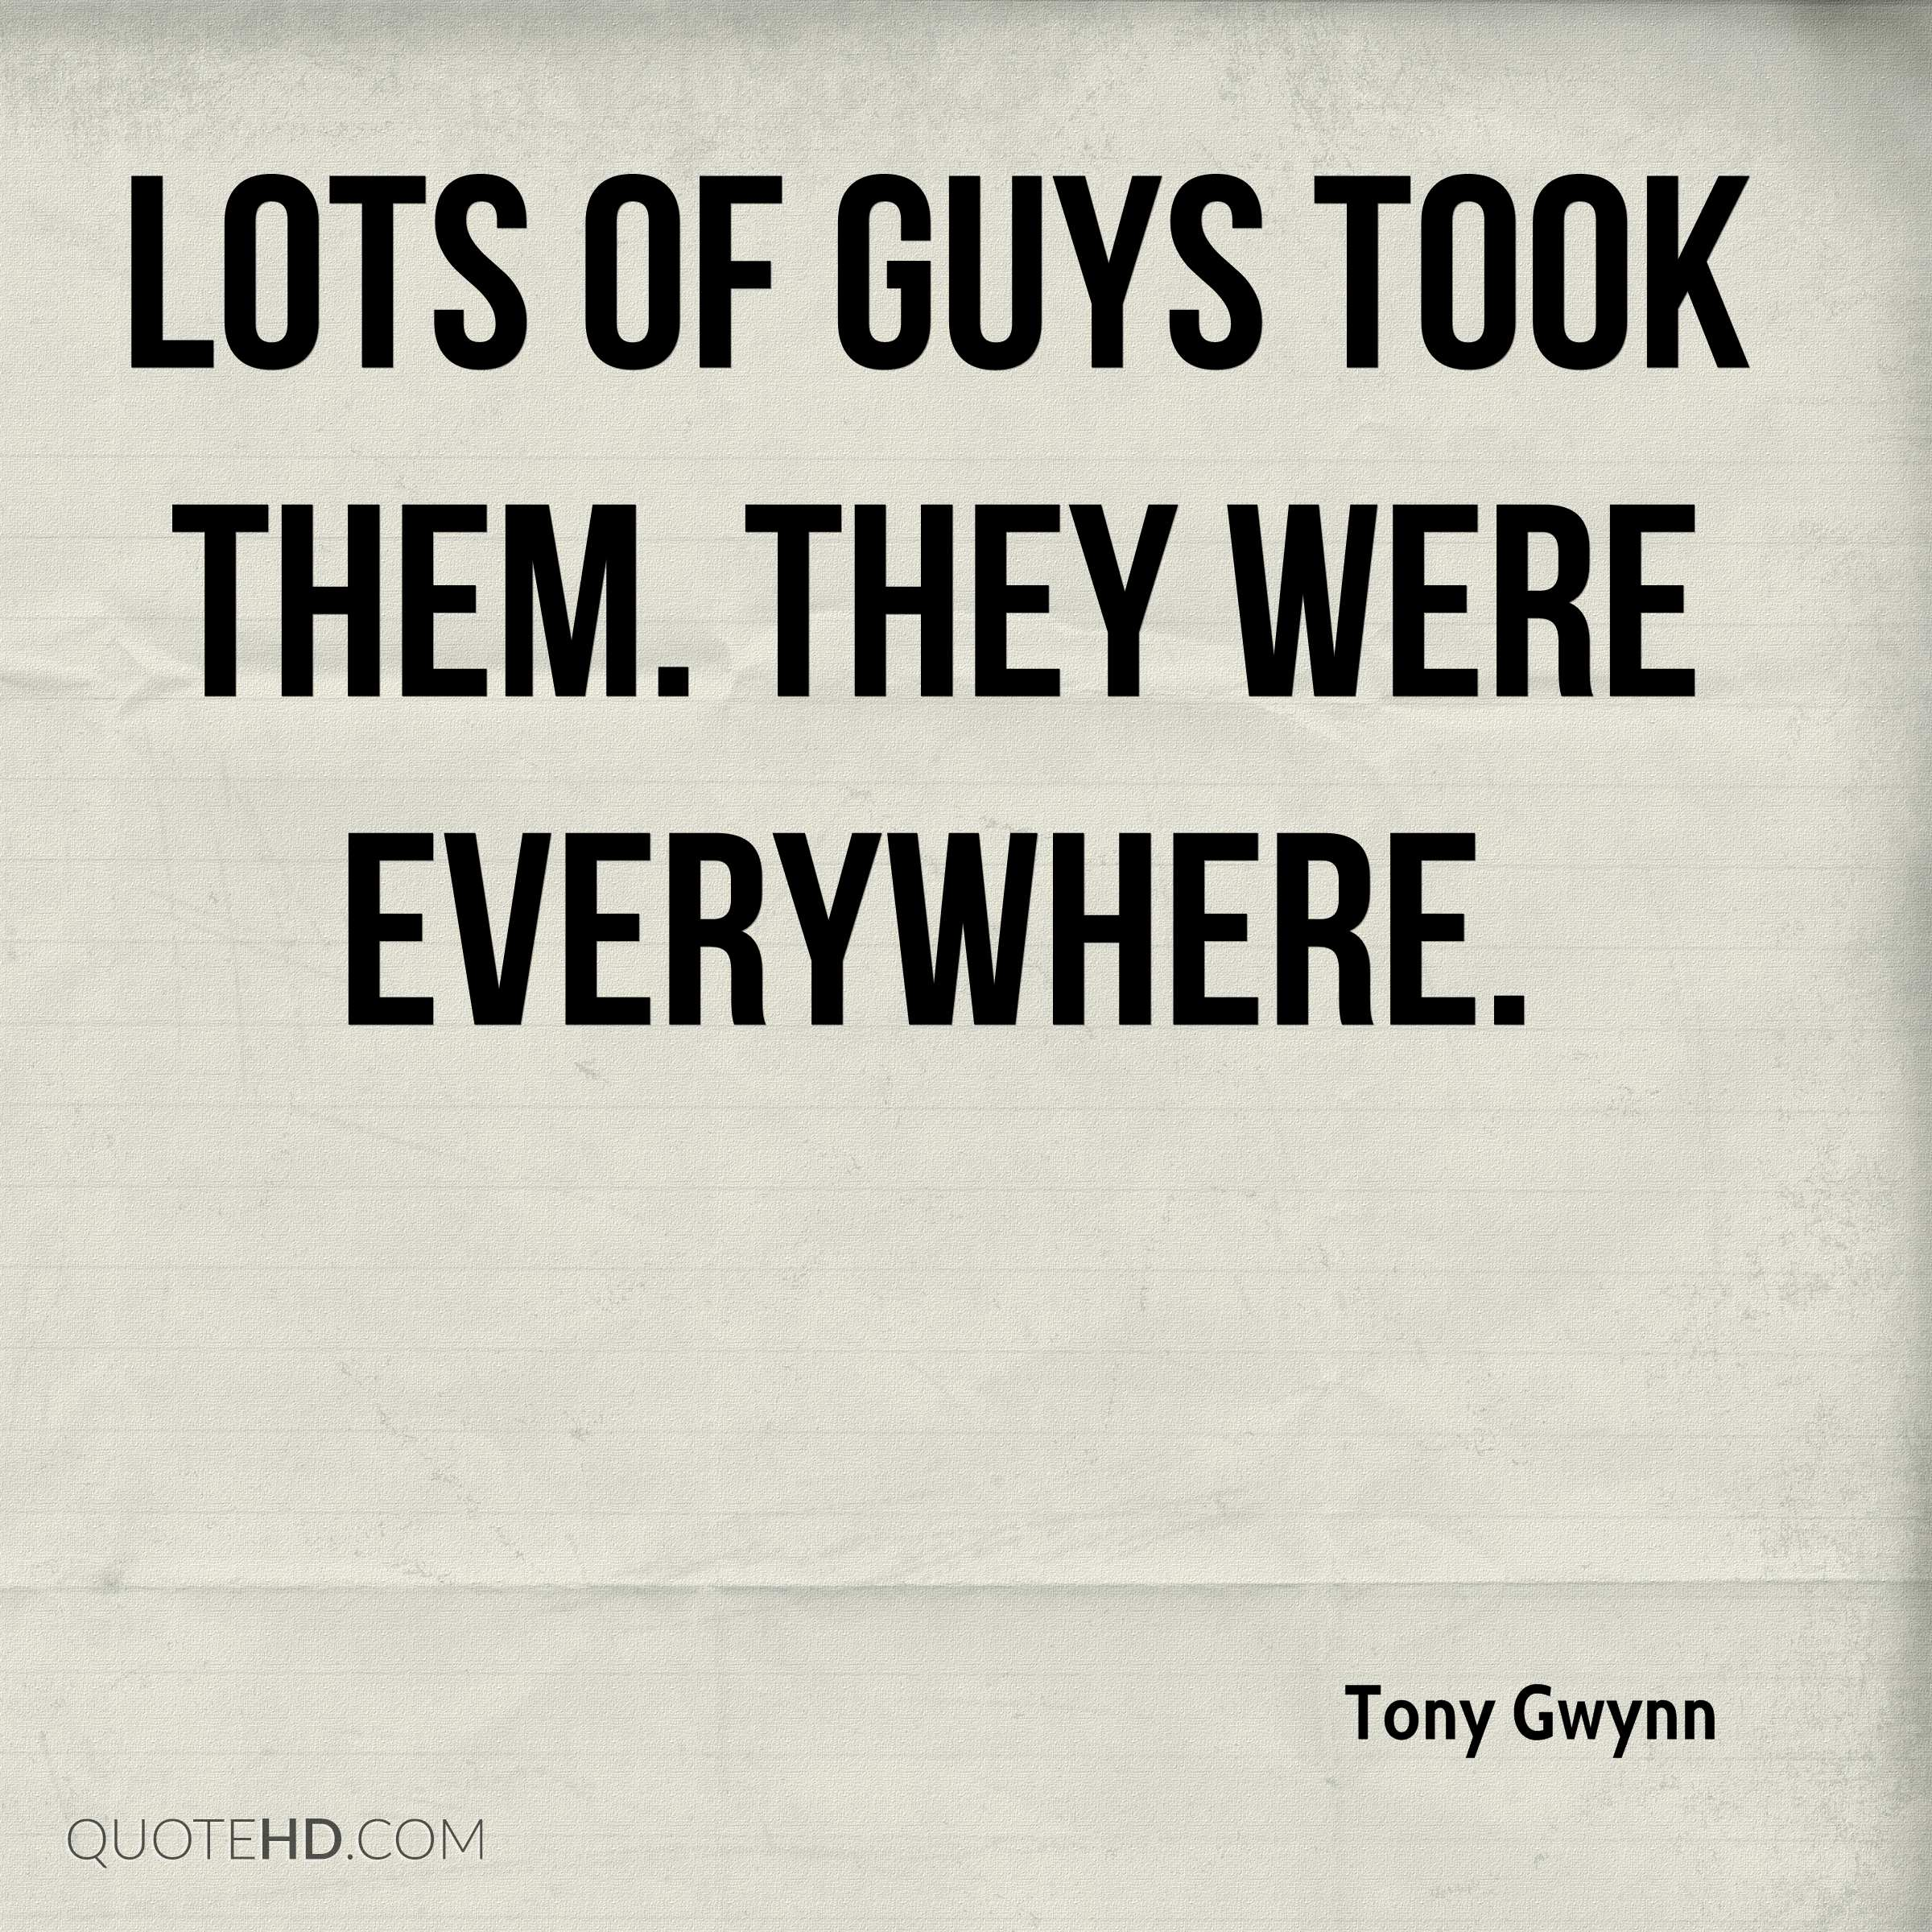 Lots of guys took them. They were everywhere.